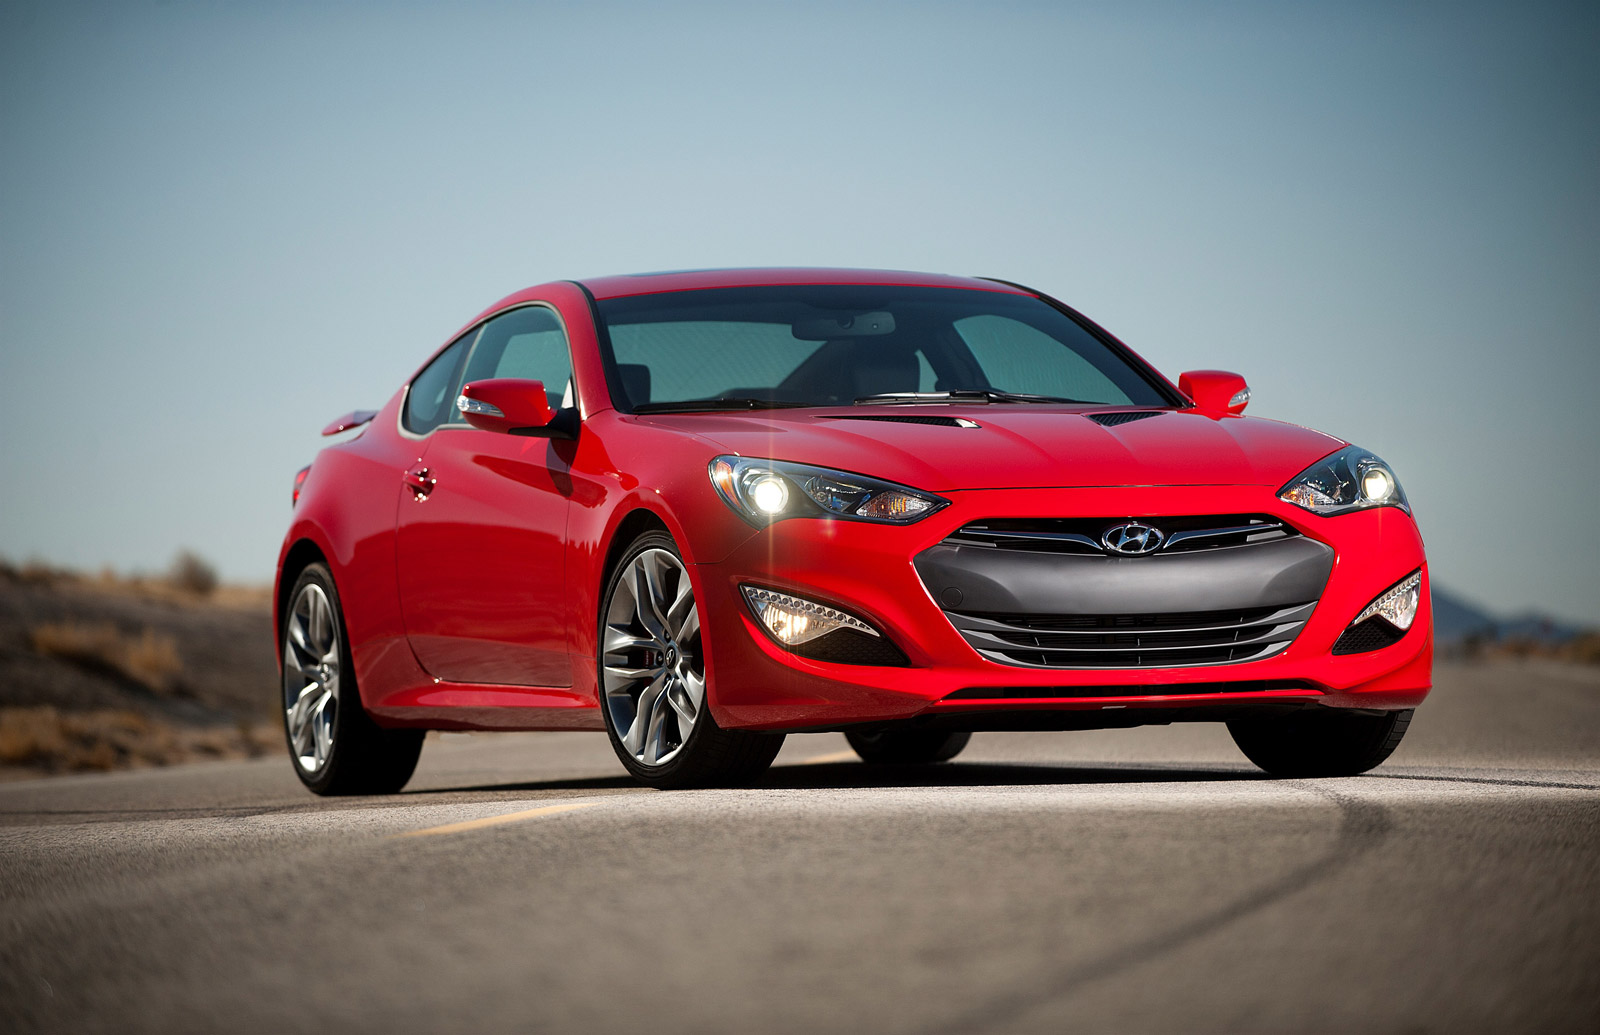 2015 Hyundai Genesis Coupe Safety Review and Crash Test Ratings